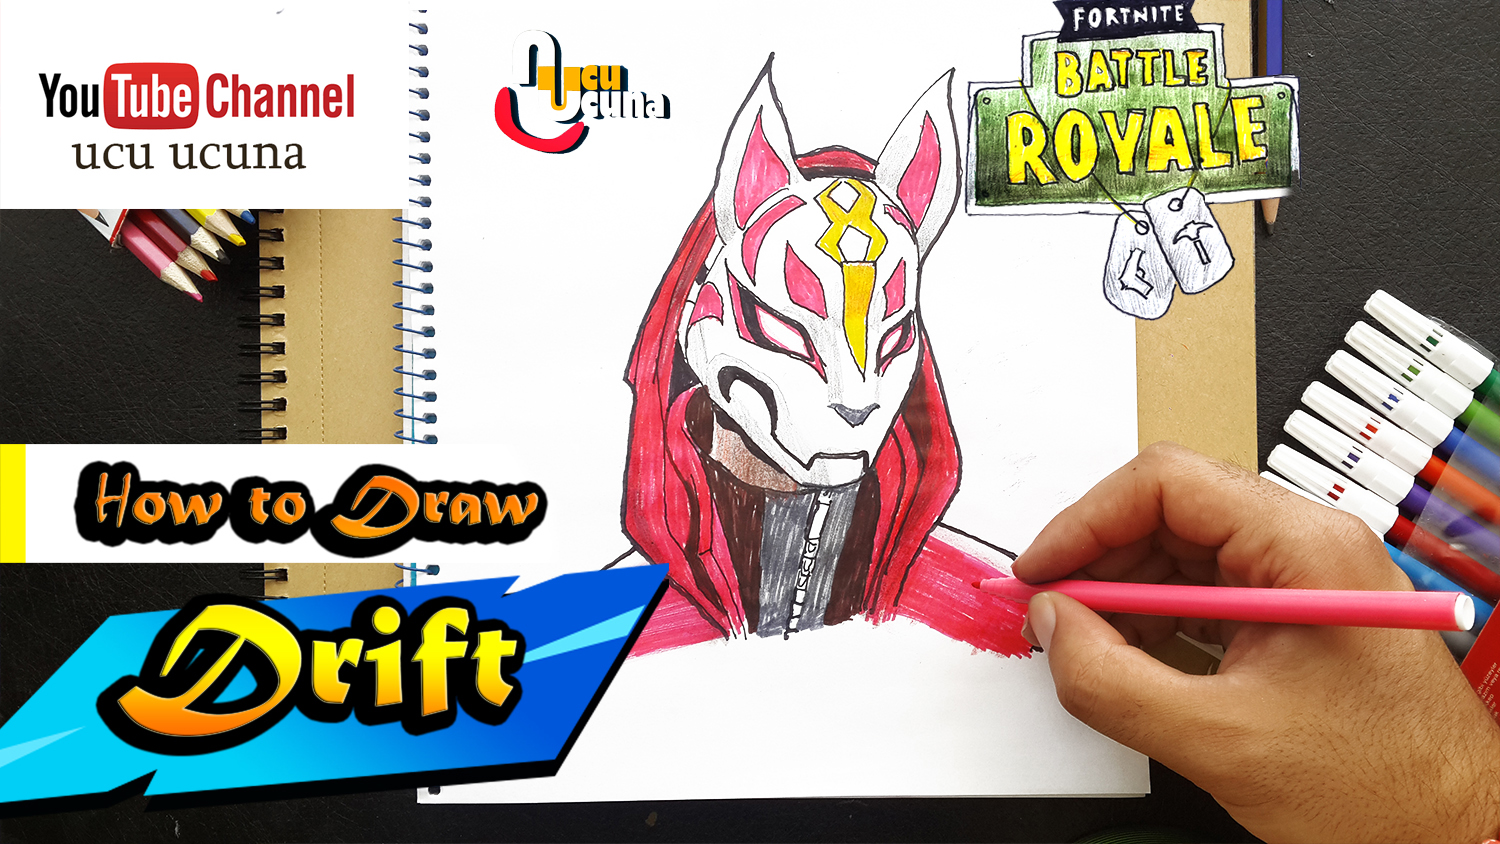 How to draw drift tutorial youtube channel name is ucu ucuna learn how to draw drift fully upragaded from fortnite step by step beginner drawing tutorial of the drift skin from fortnite